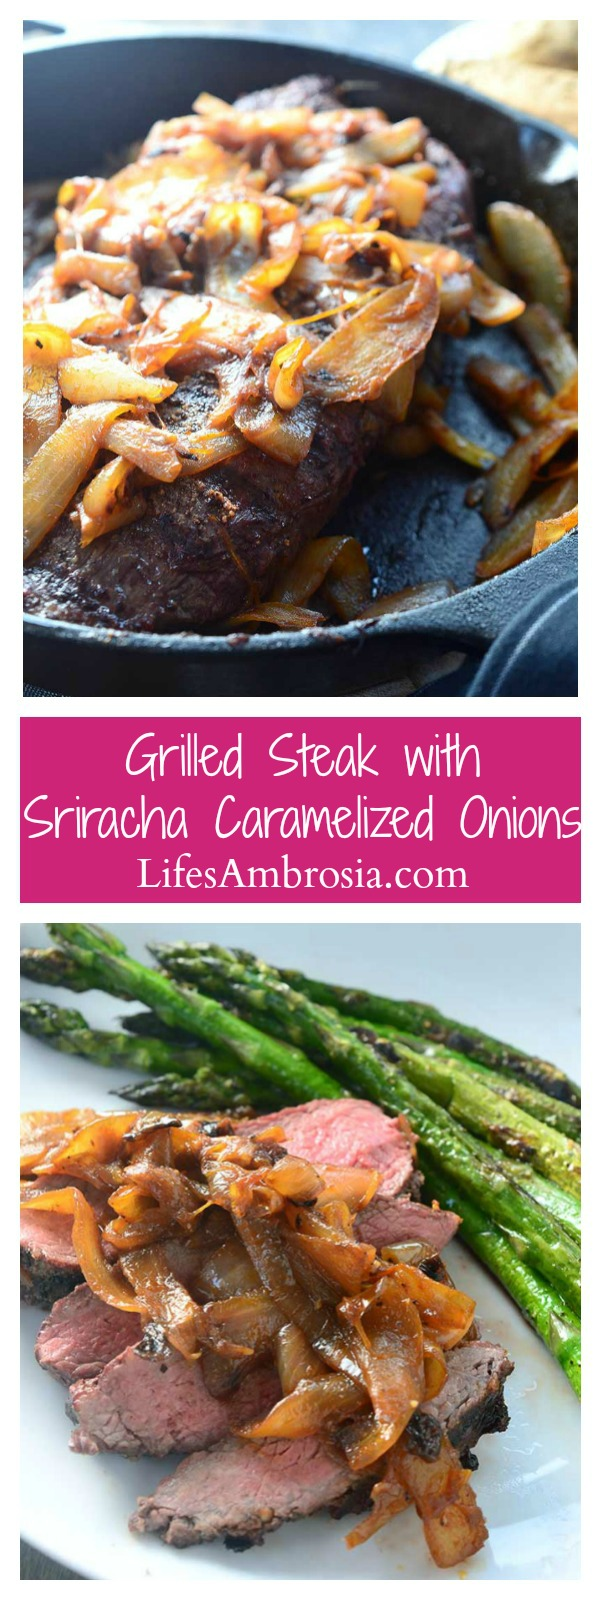 Perfectly grilled steak smothered with sriracha caramelized onions. The perfect excuse to break out your grill!